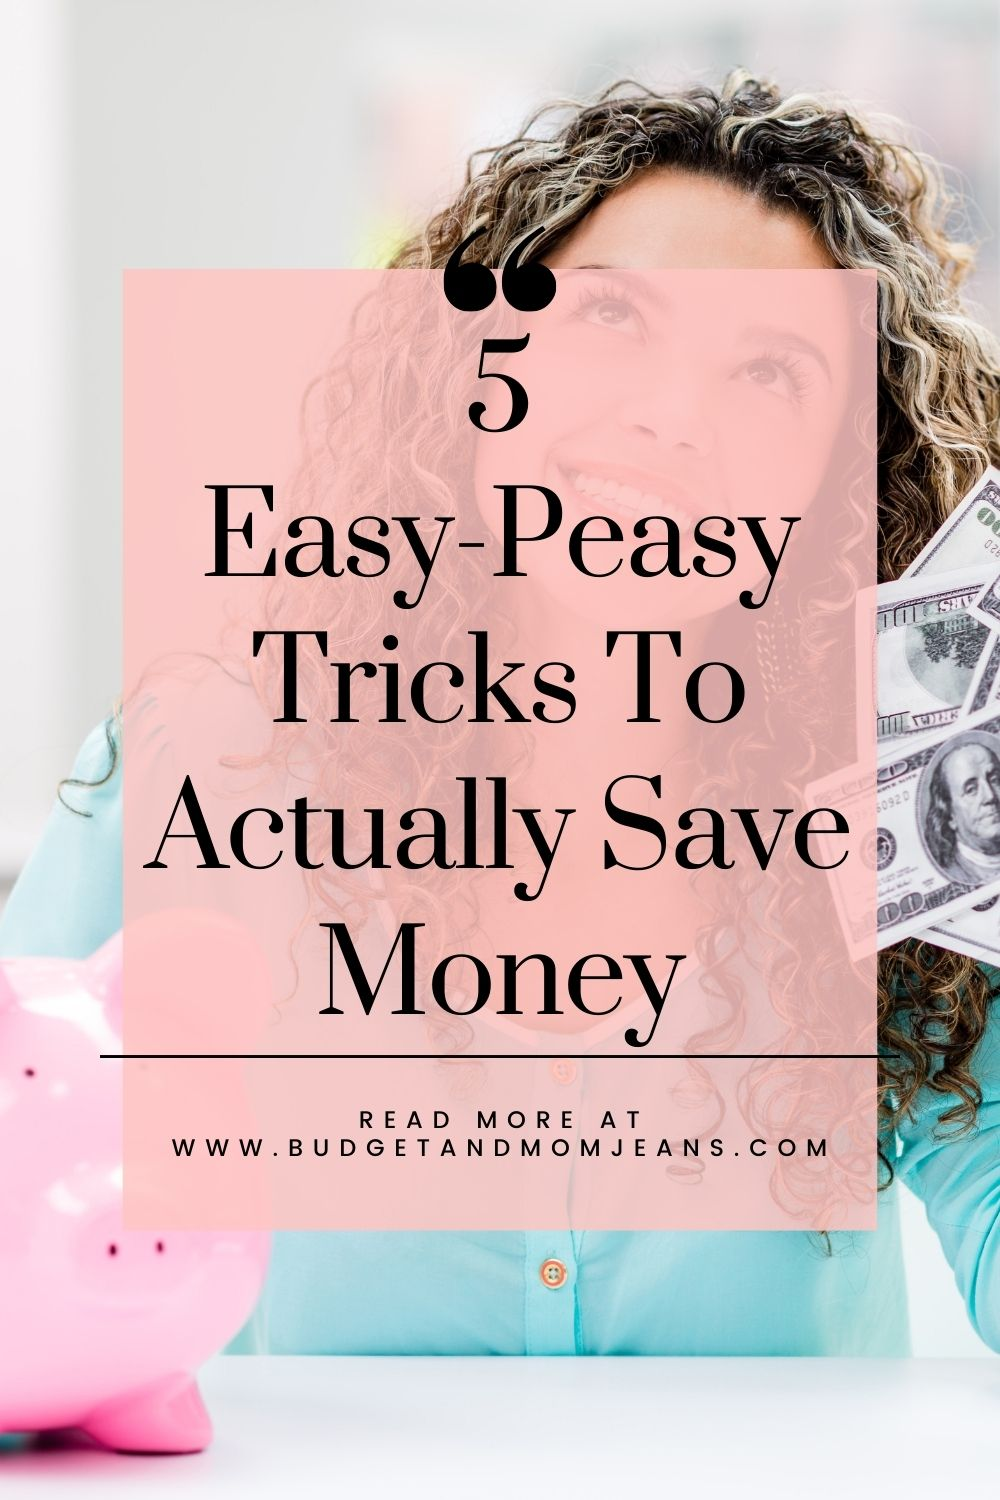 5 Easy-Peasy Tricks To Actually Save Money